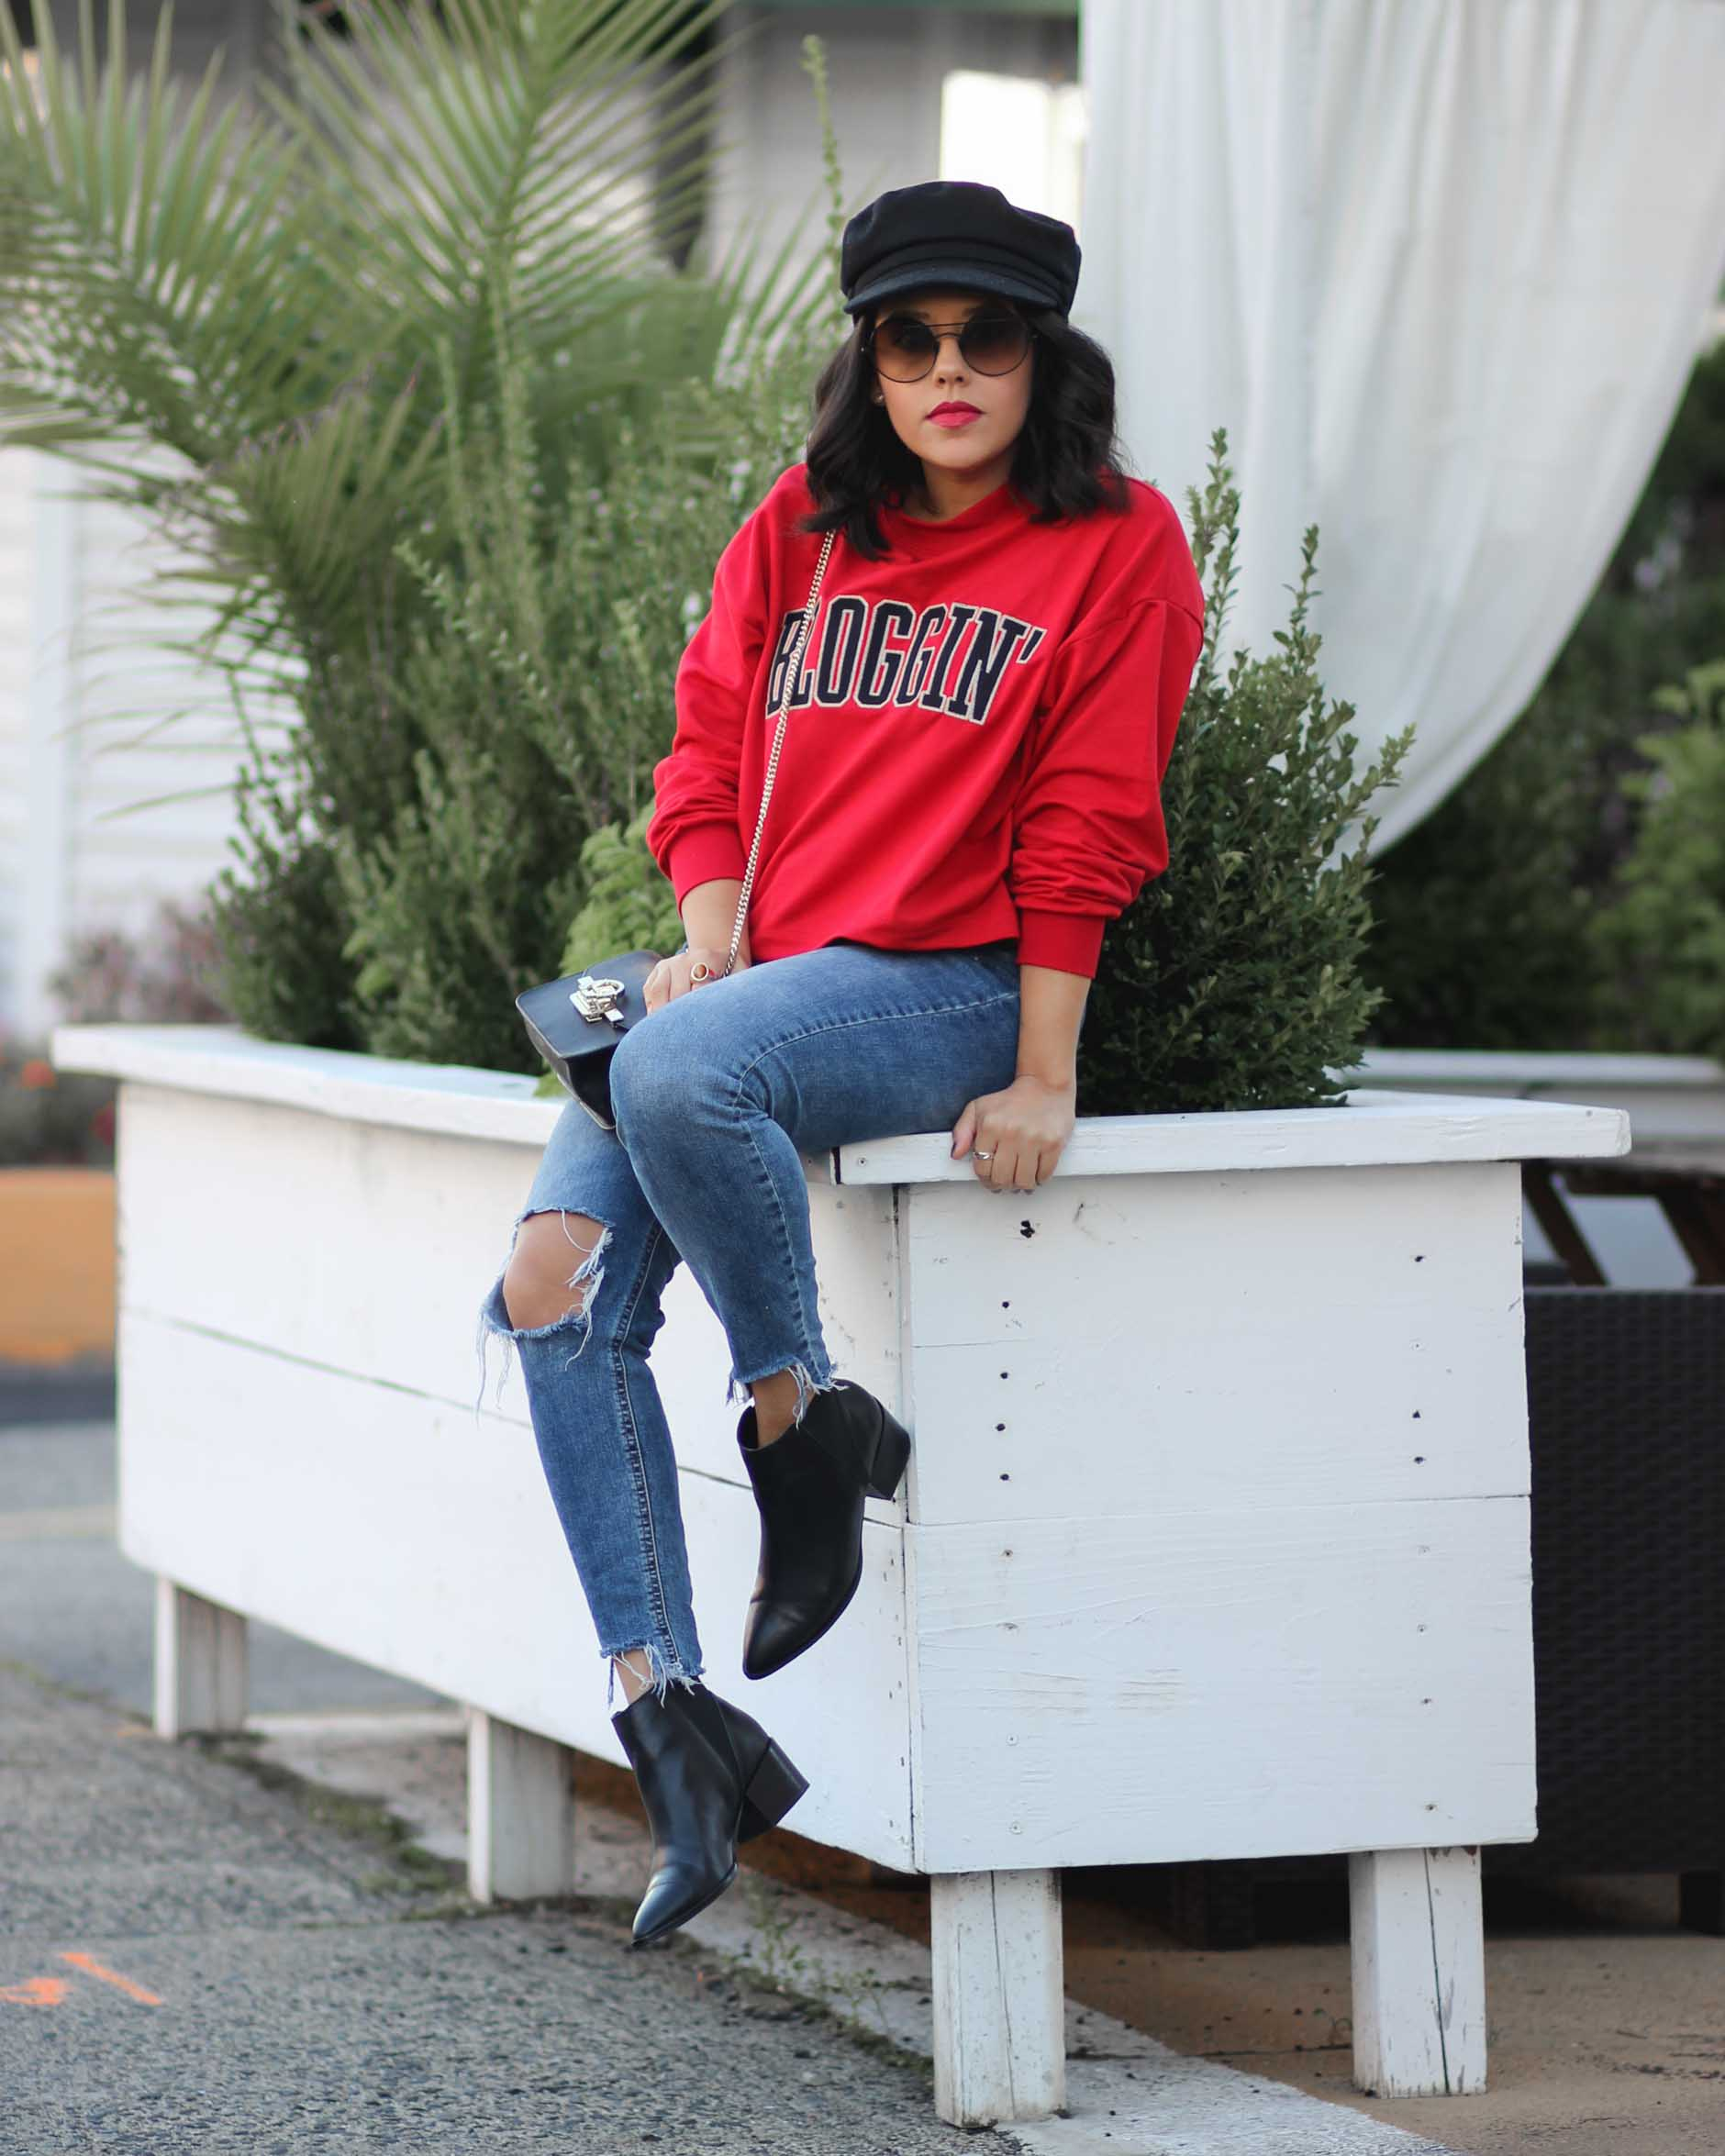 lifestyle blogger naty michele wearing a blogging sweatshirt and jeans with booties